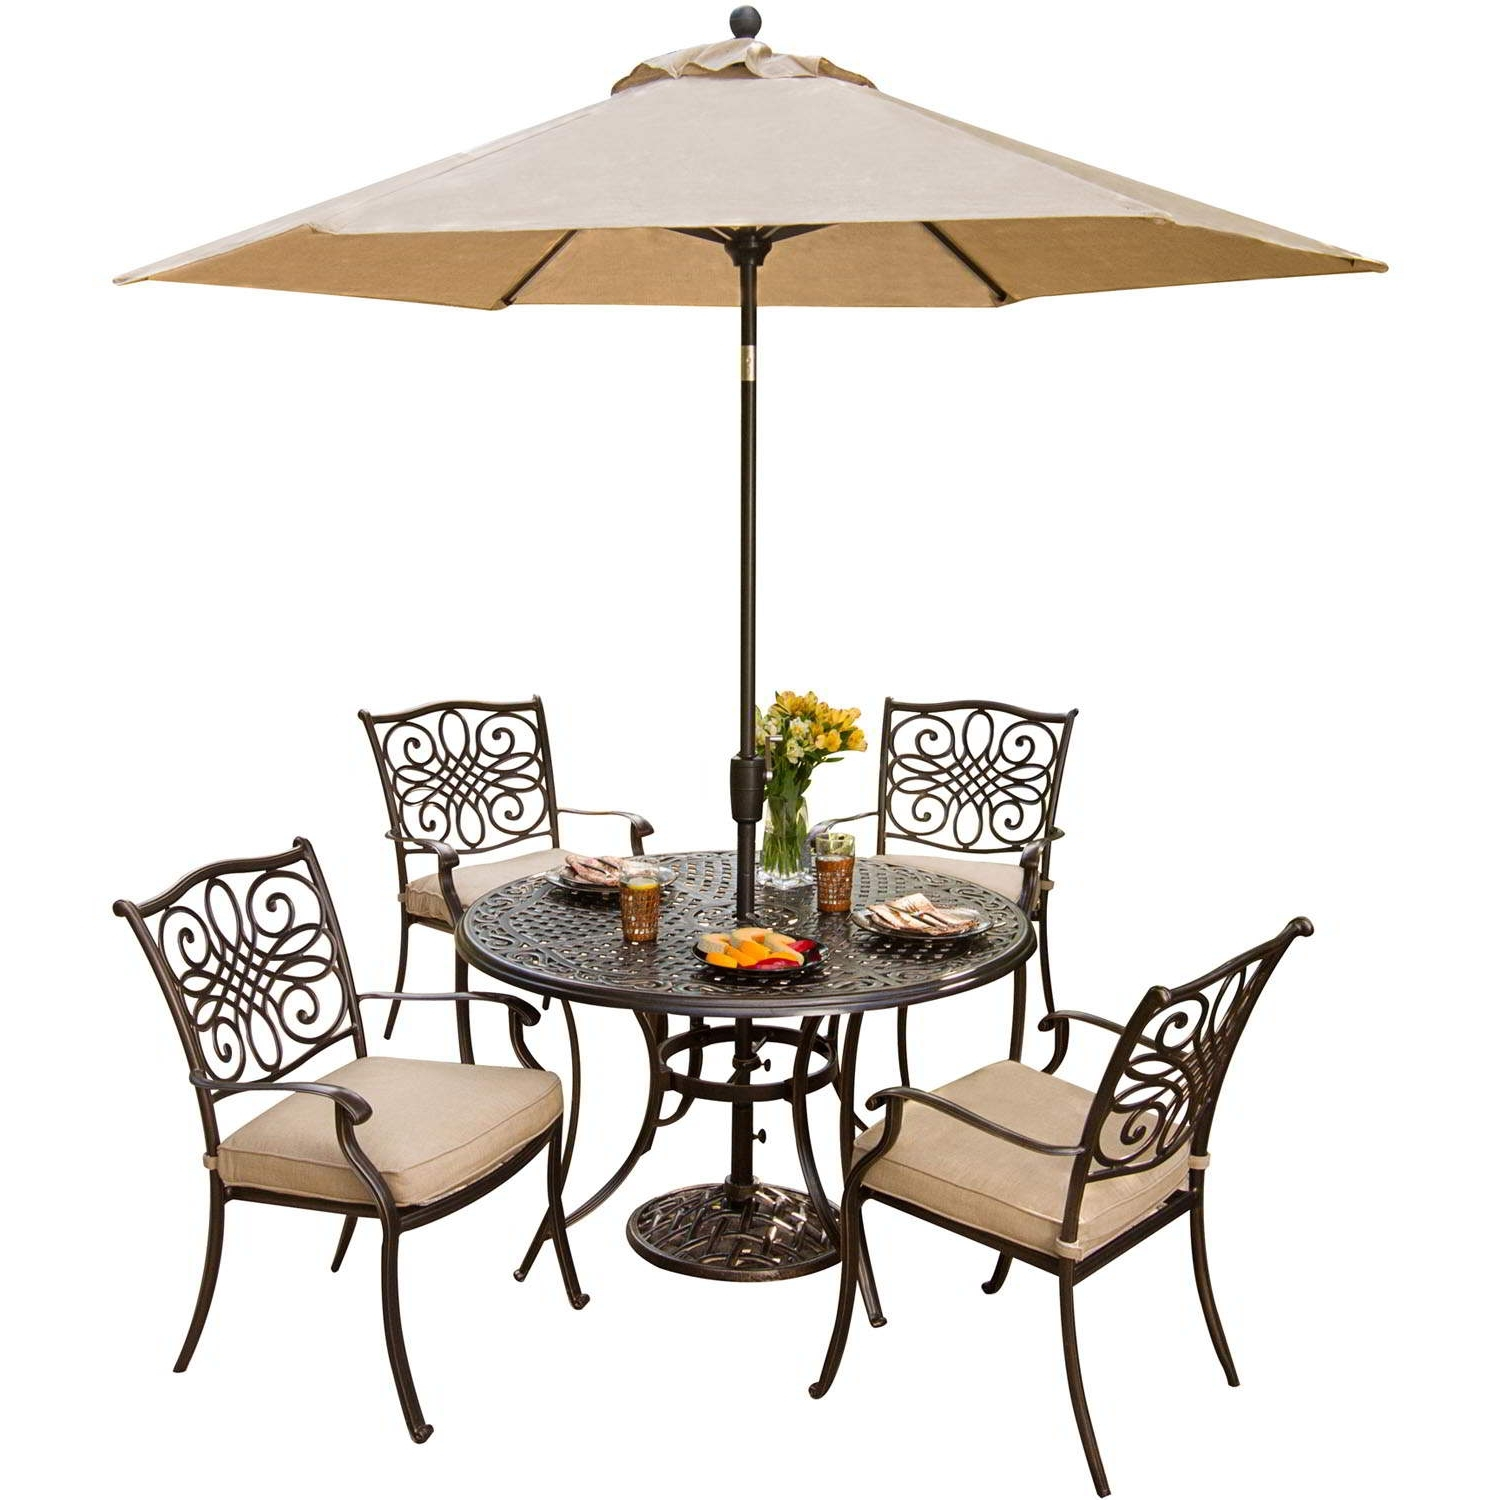 Most Up To Date Traditions 5 Piece Dining Set With Umbrella – Traditions5Pc Su Pertaining To Patio Dining Sets With Umbrellas (View 9 of 20)